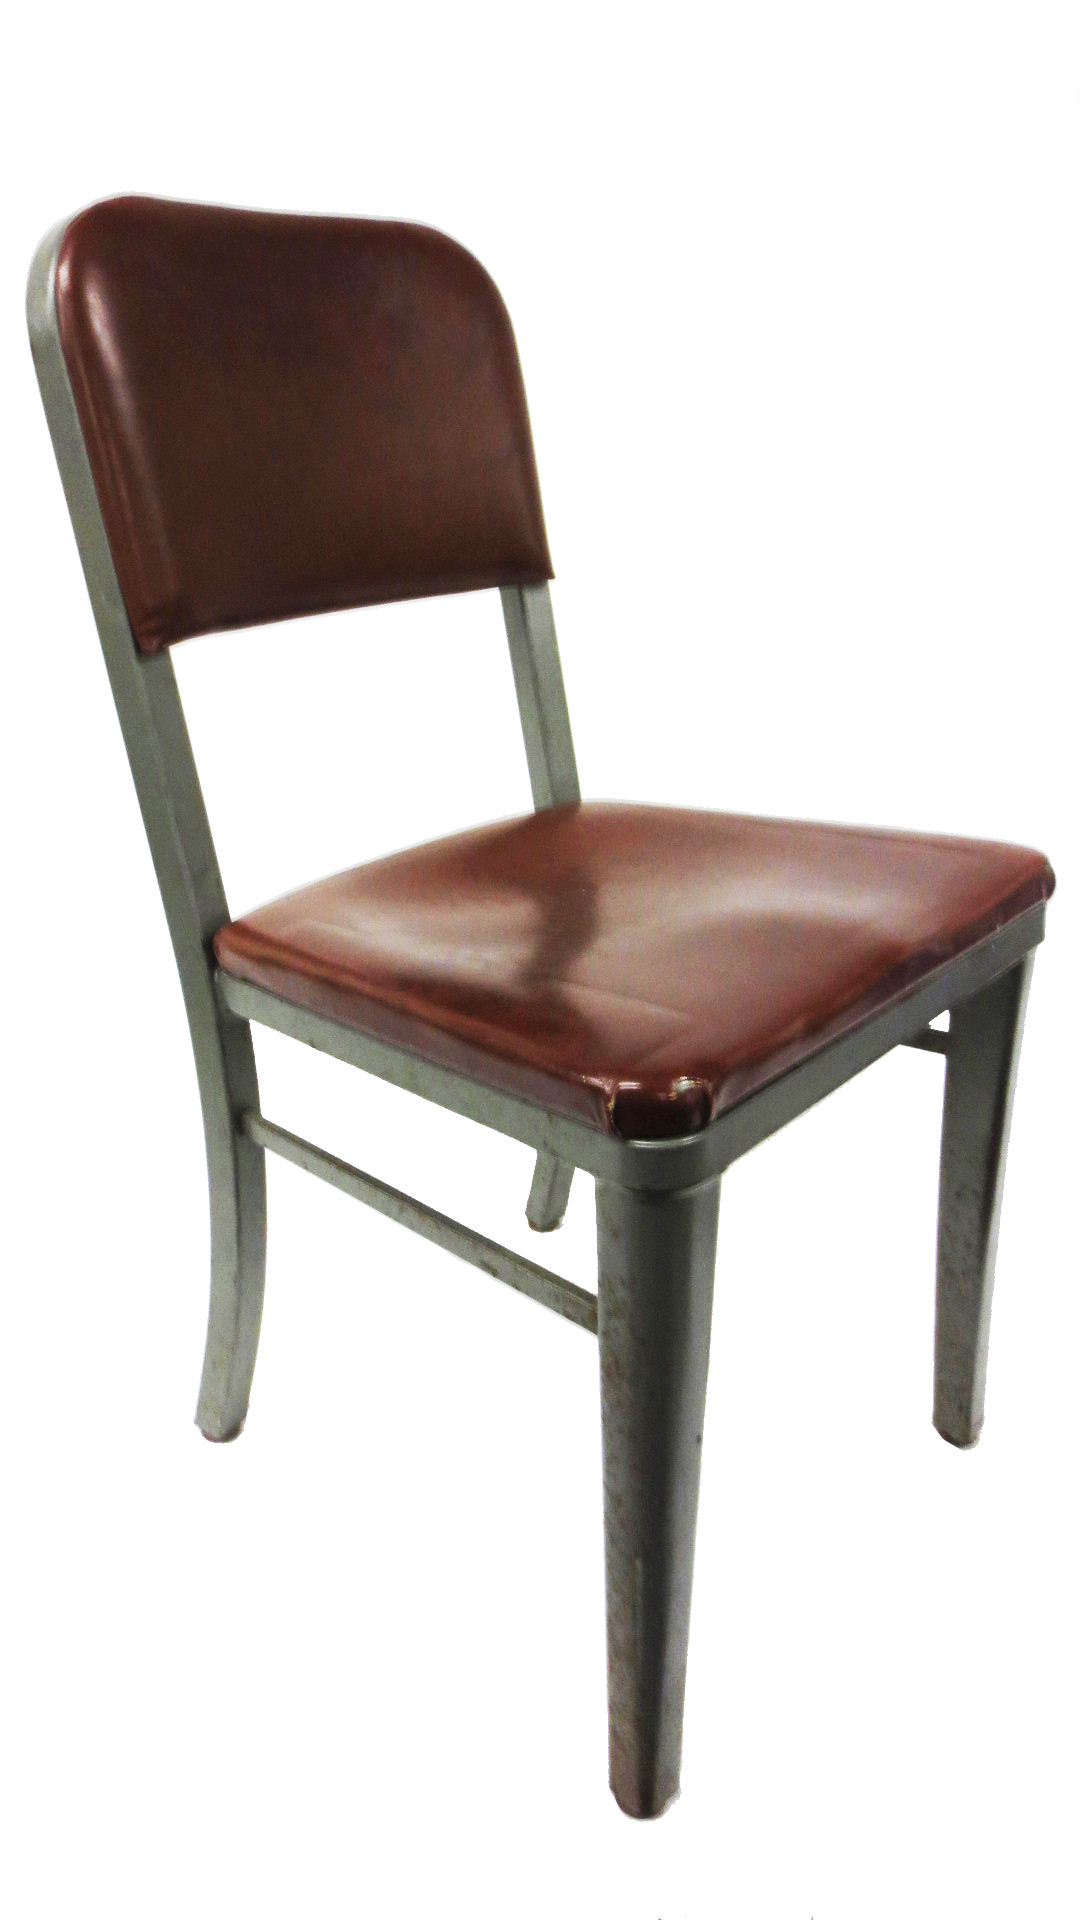 Best ideas about Mid Century Office Chair . Save or Pin Mid Century Steelcase fice Chair Now.